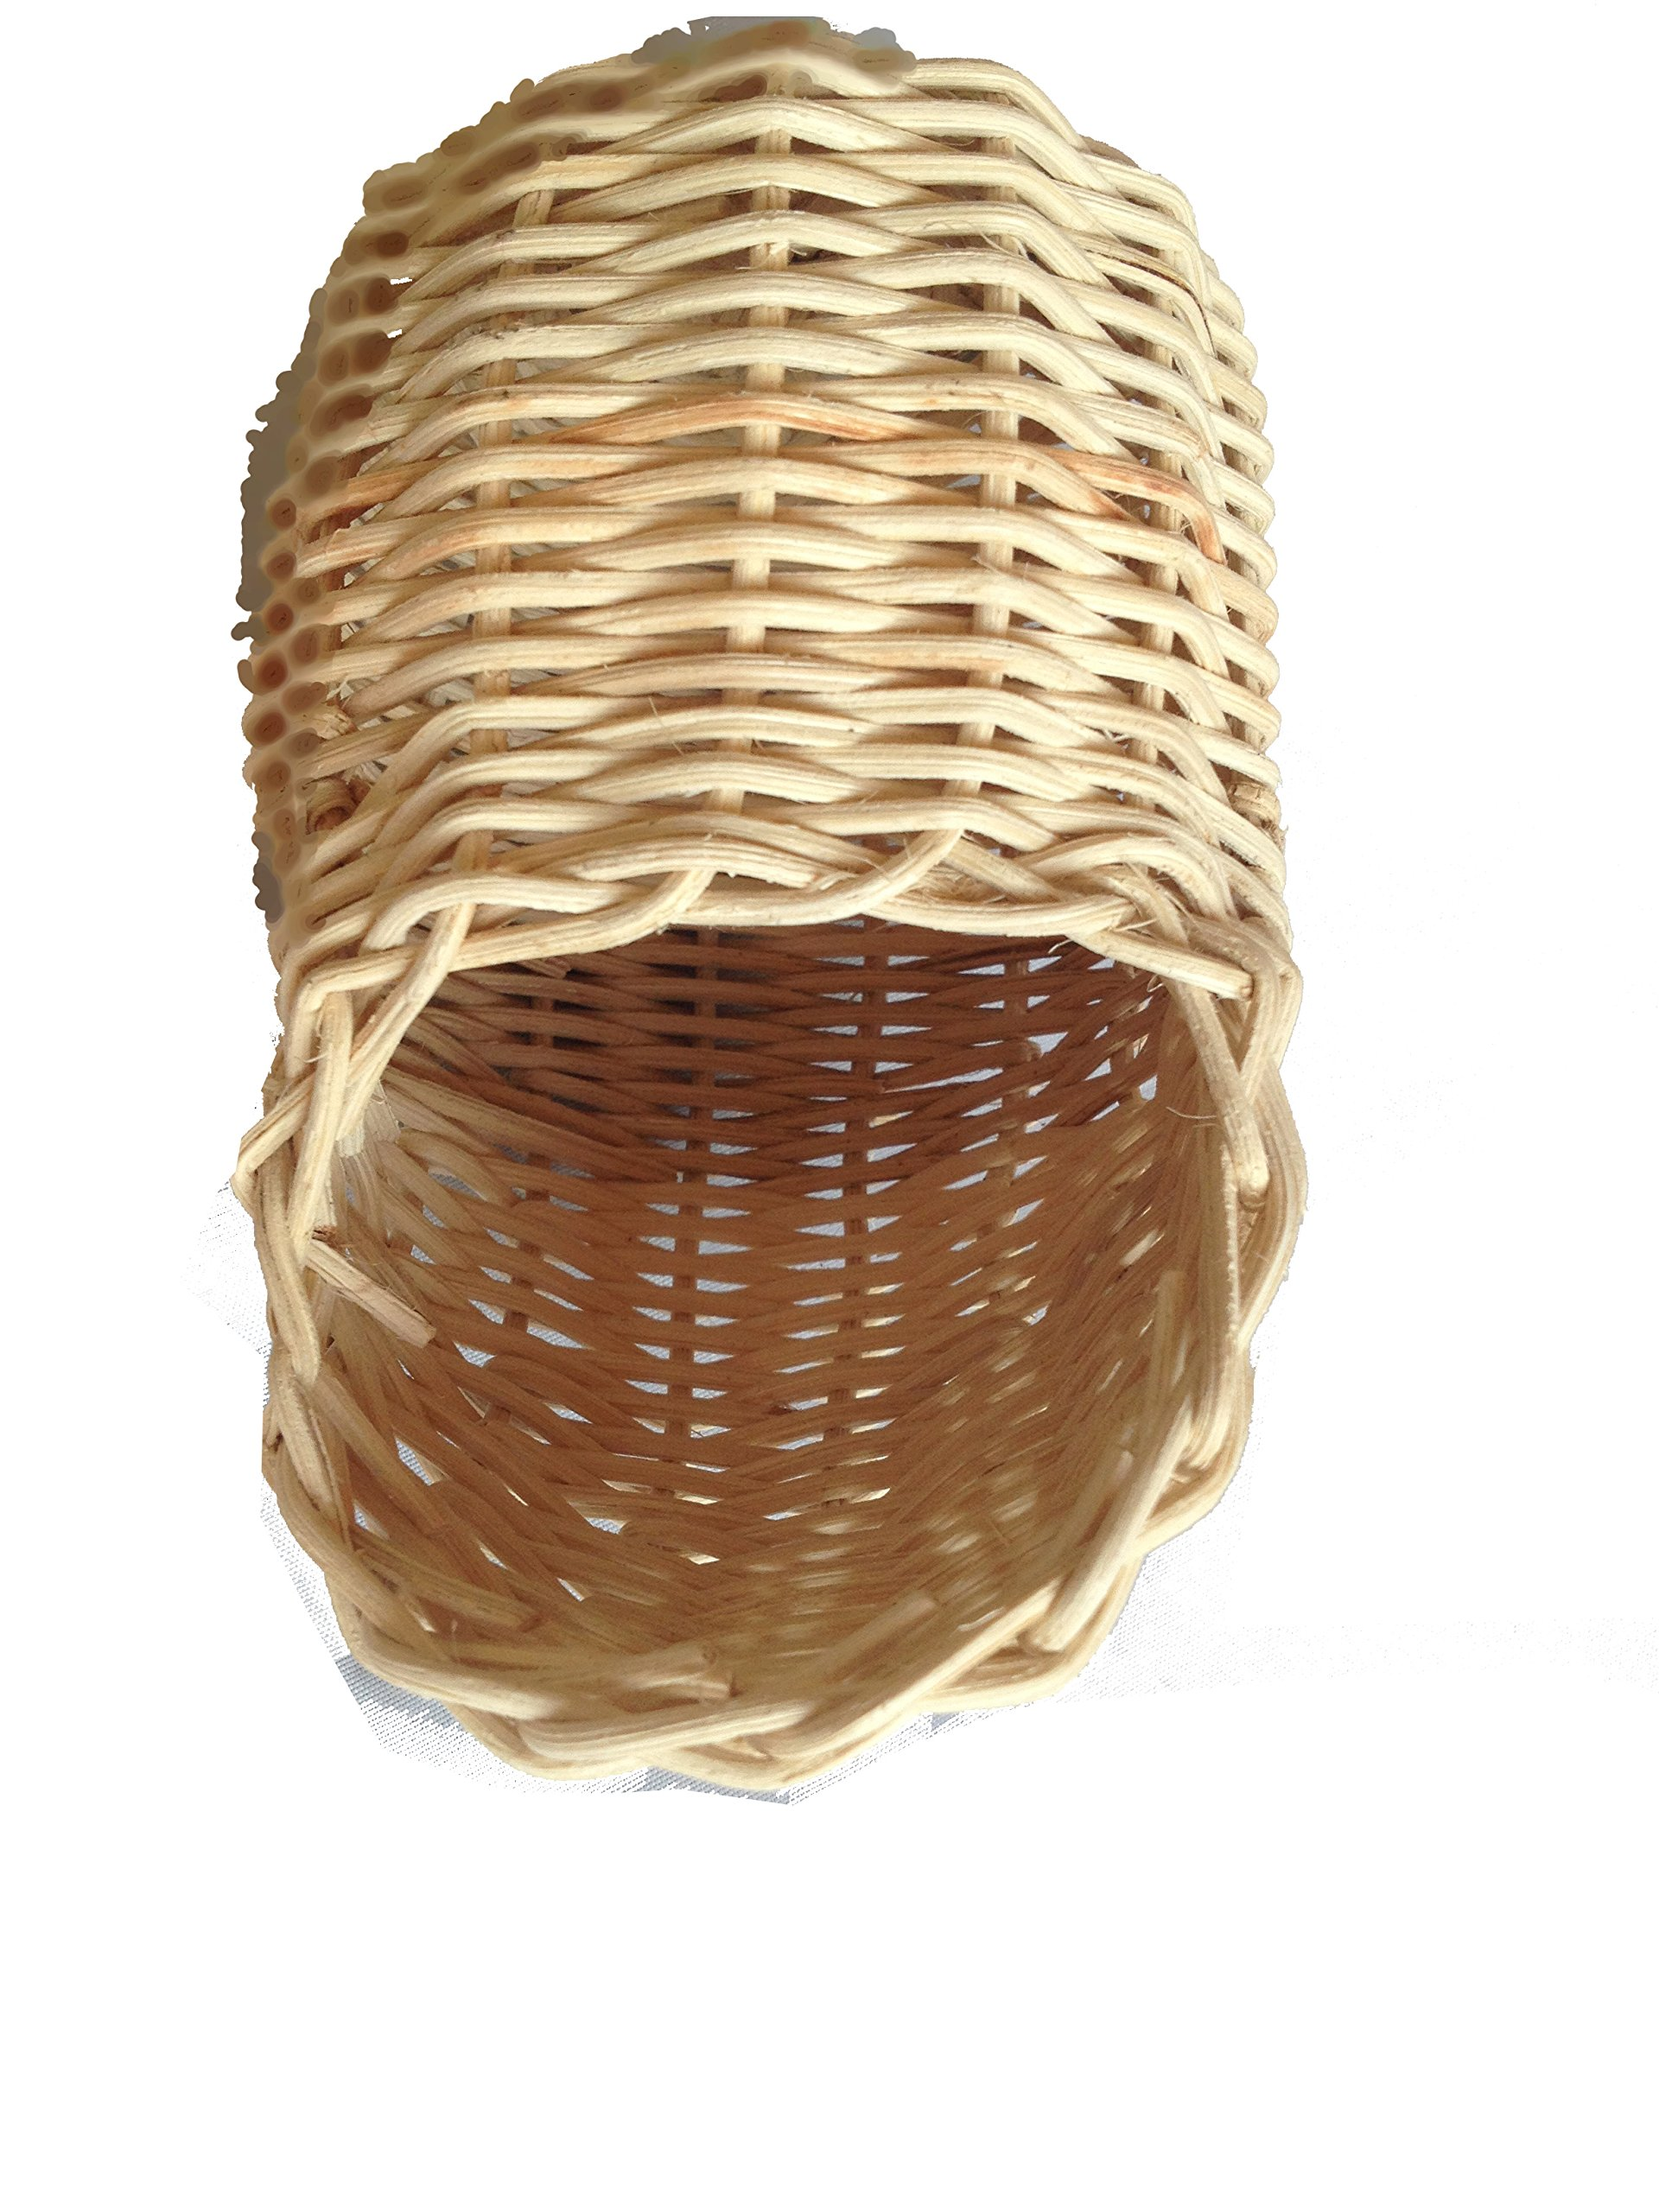 Handmade Rattan Nature's Nest Finch Birds 3x5 Inch by Power of Dream (Image #3)